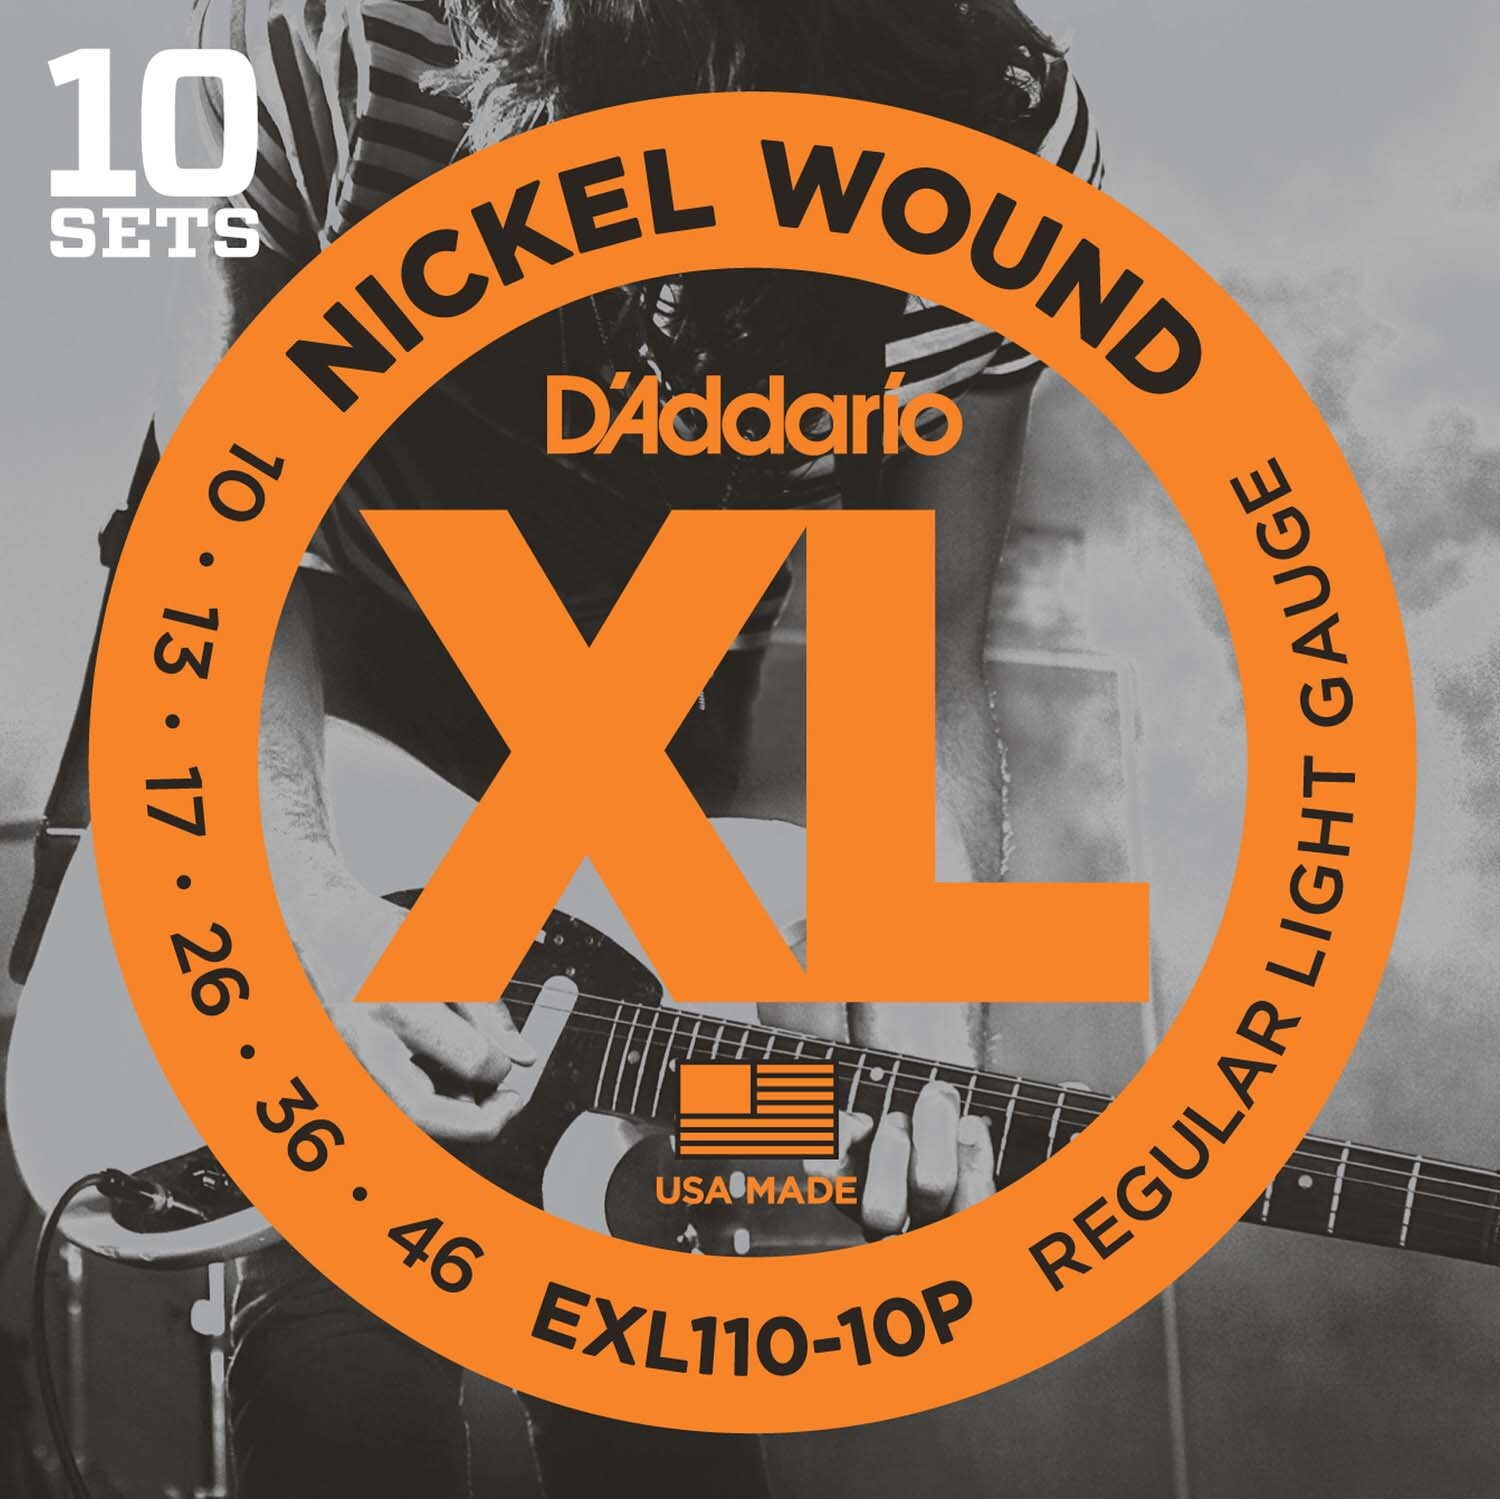 D'Addario EXL110 Electric Guitar Strings  Light 10-46 - 10 Sets